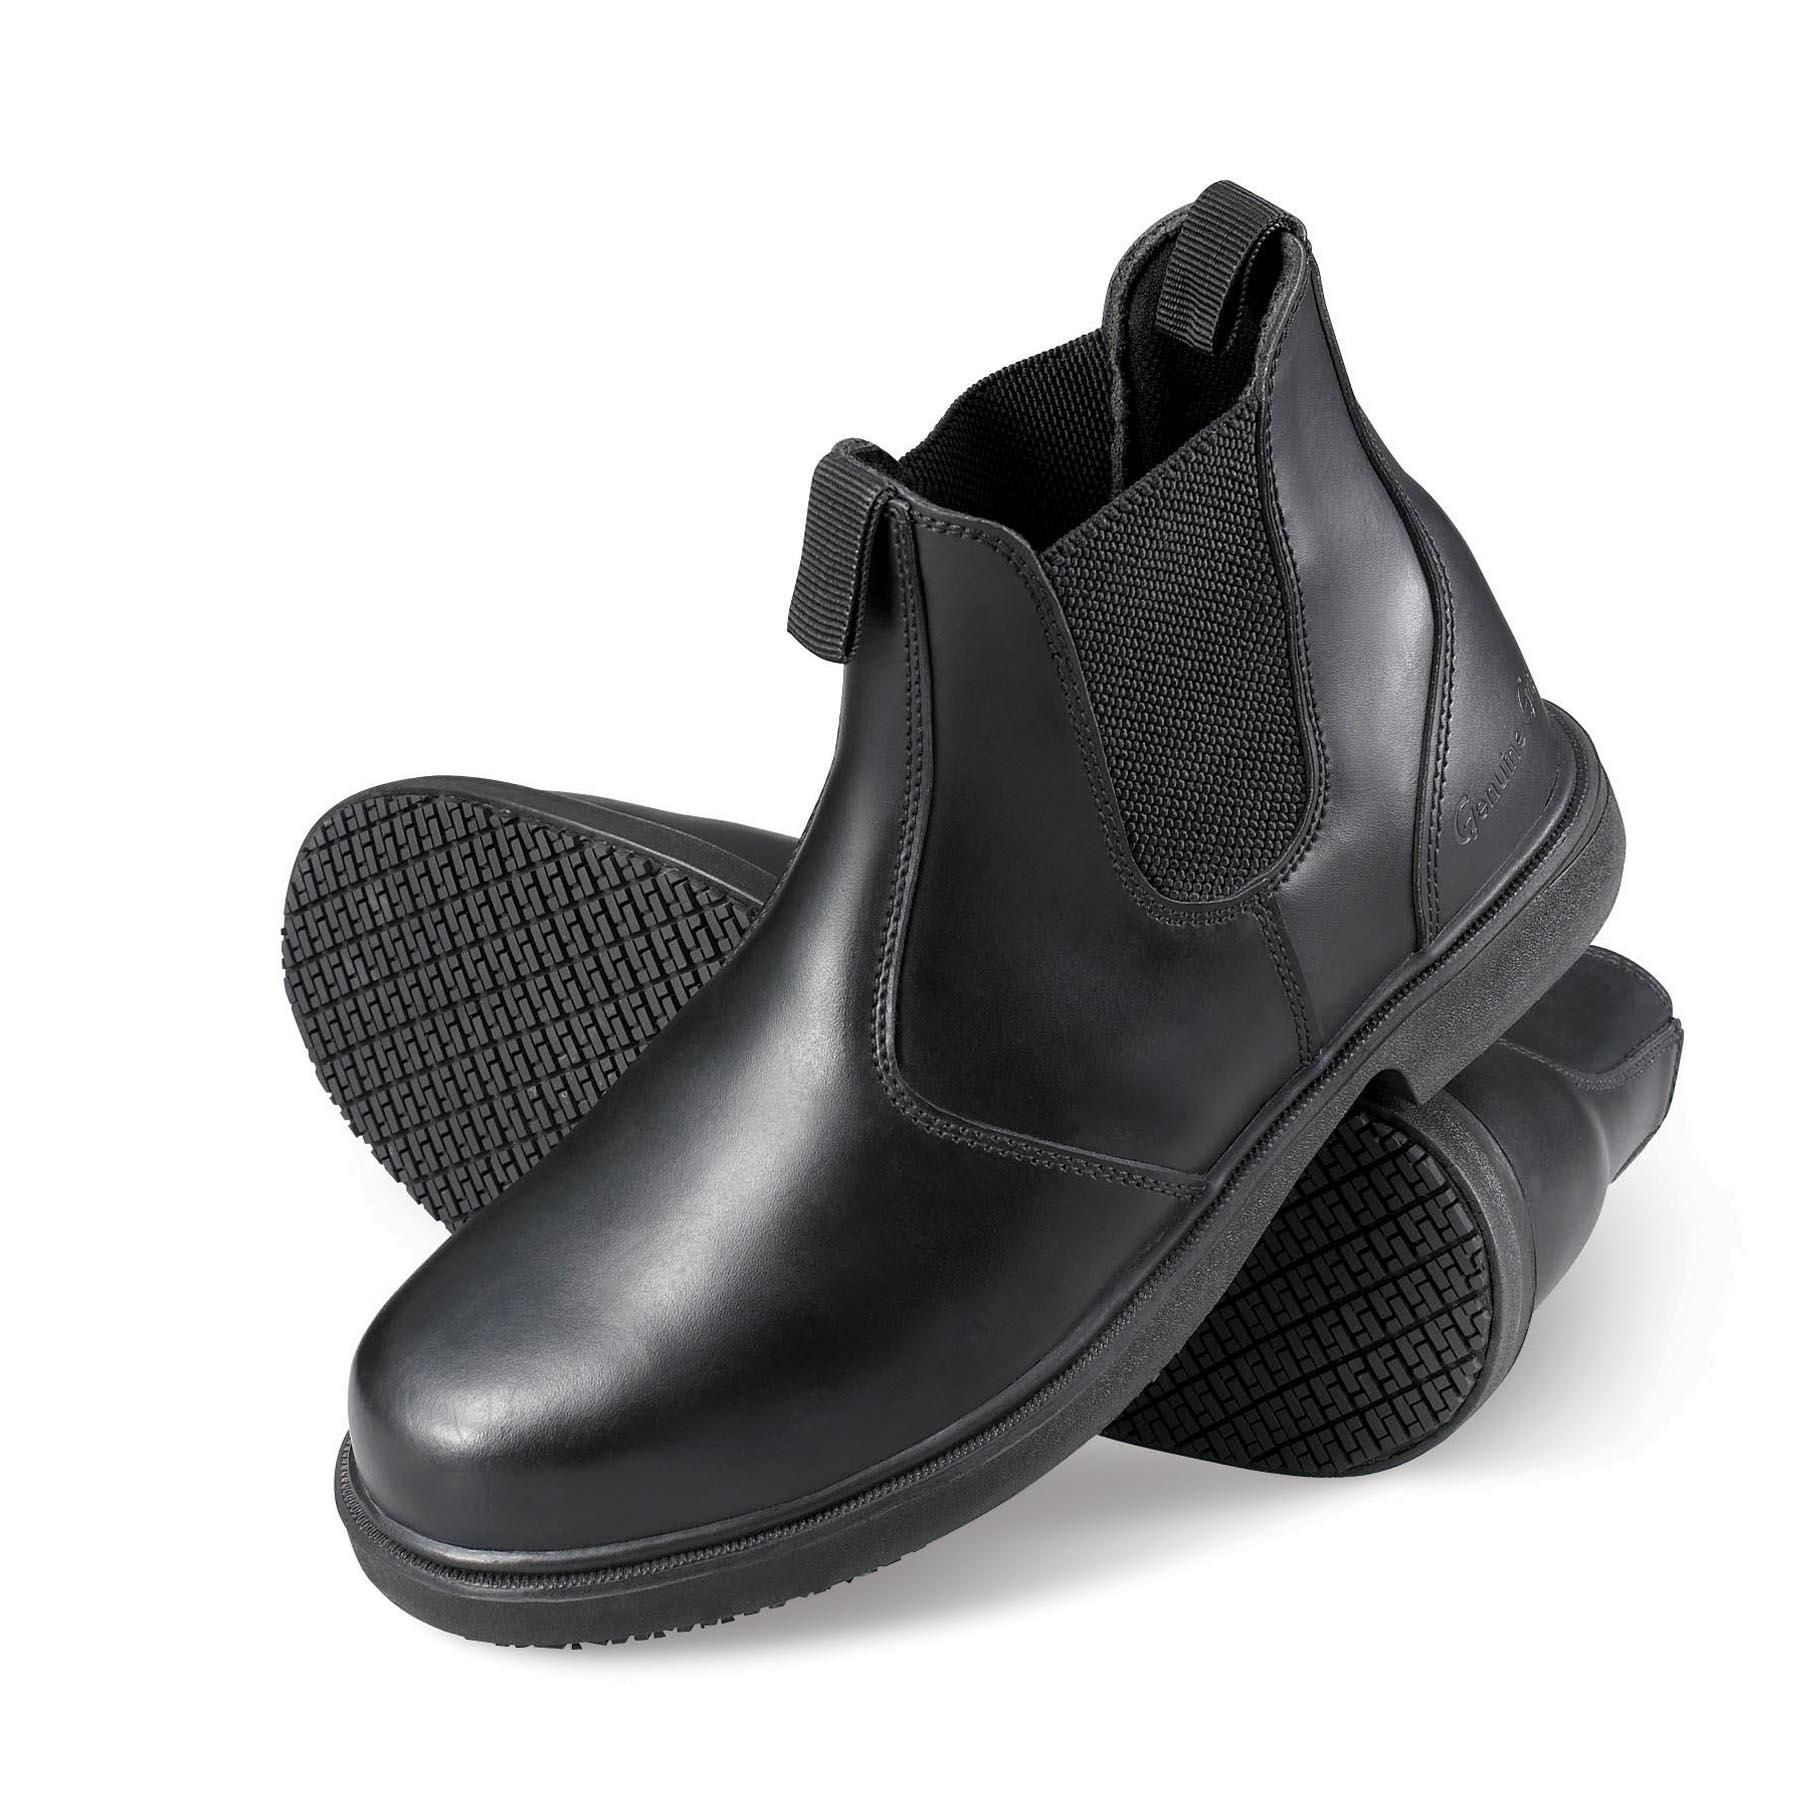 Sole To Reduce Shoe Size